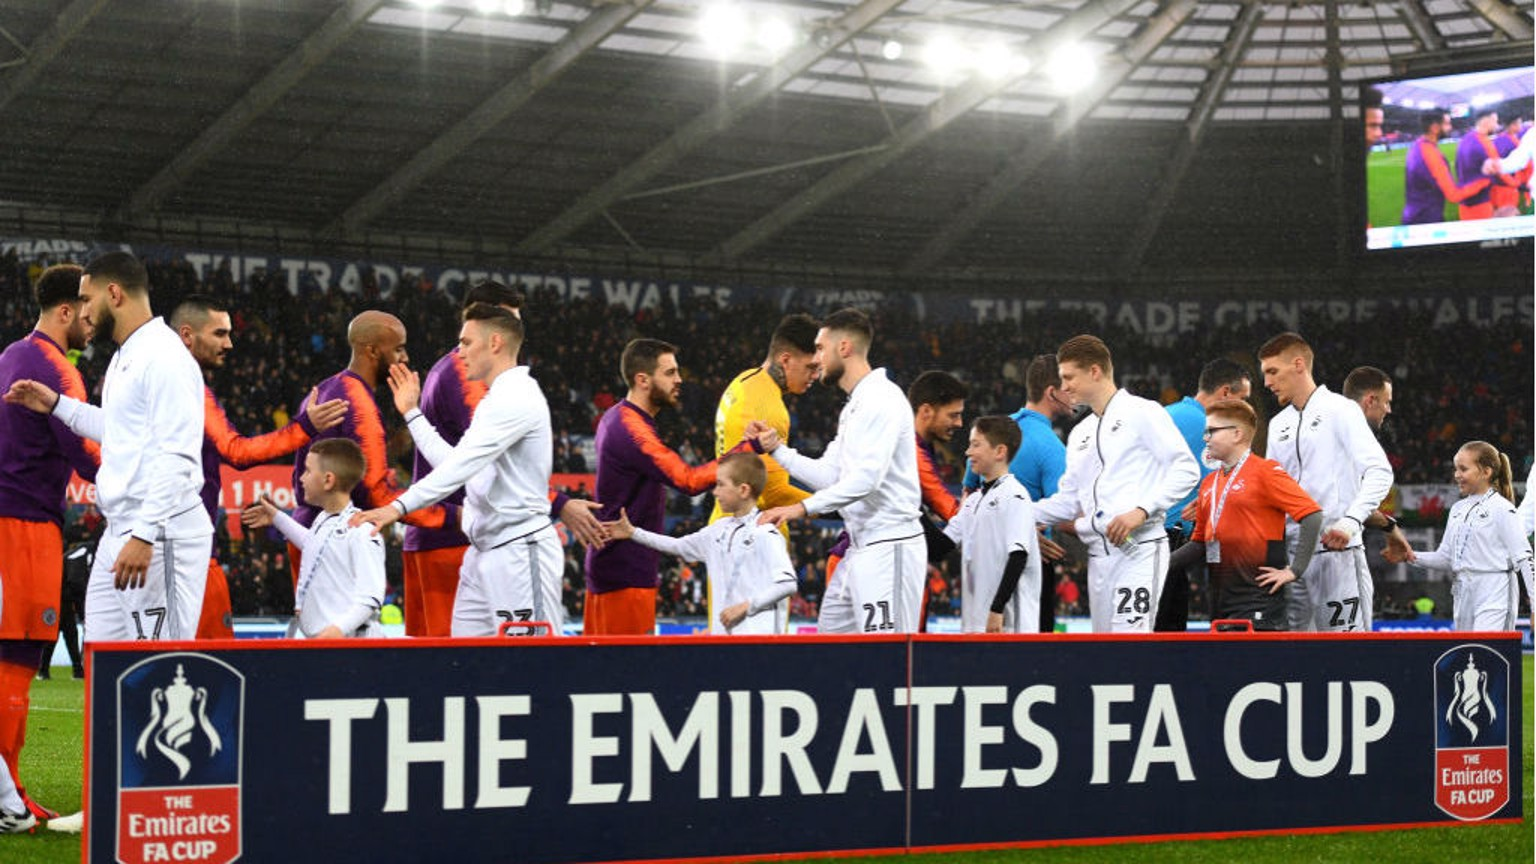 SHAKE ON IT: The players exchange greetings before kick-off